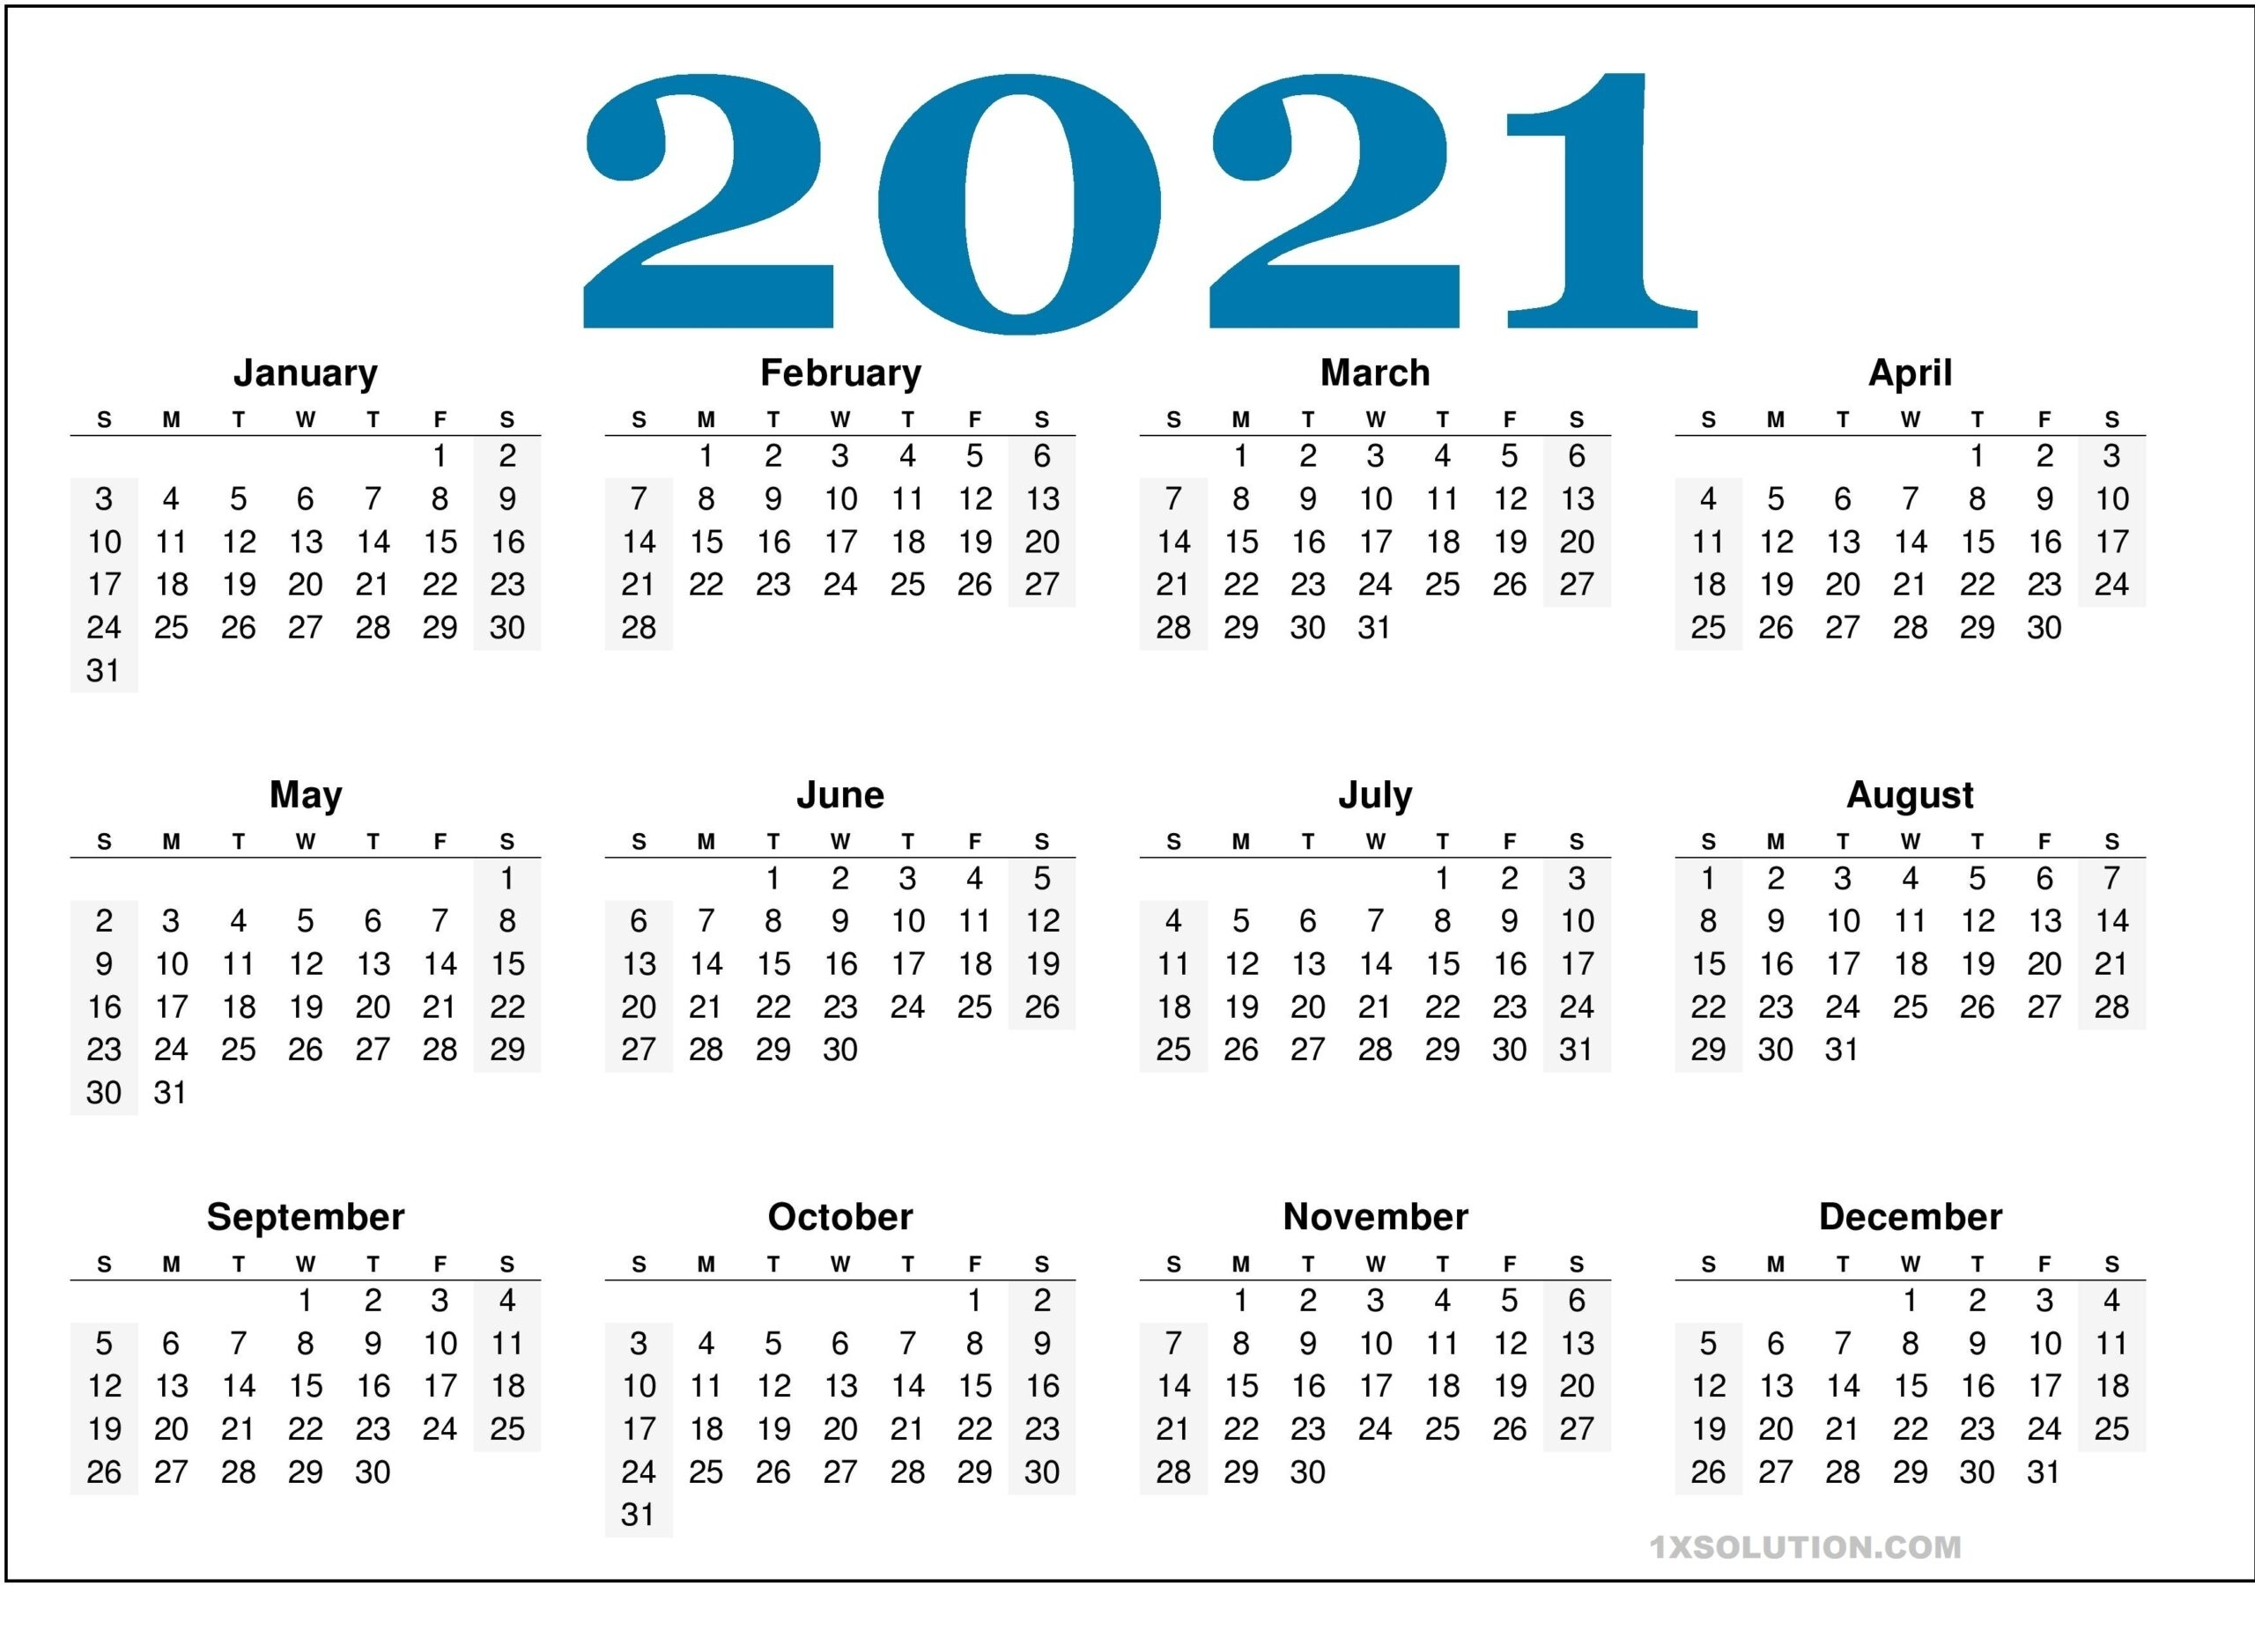 2021 Daily Calendar: To Write Your Important Schedule